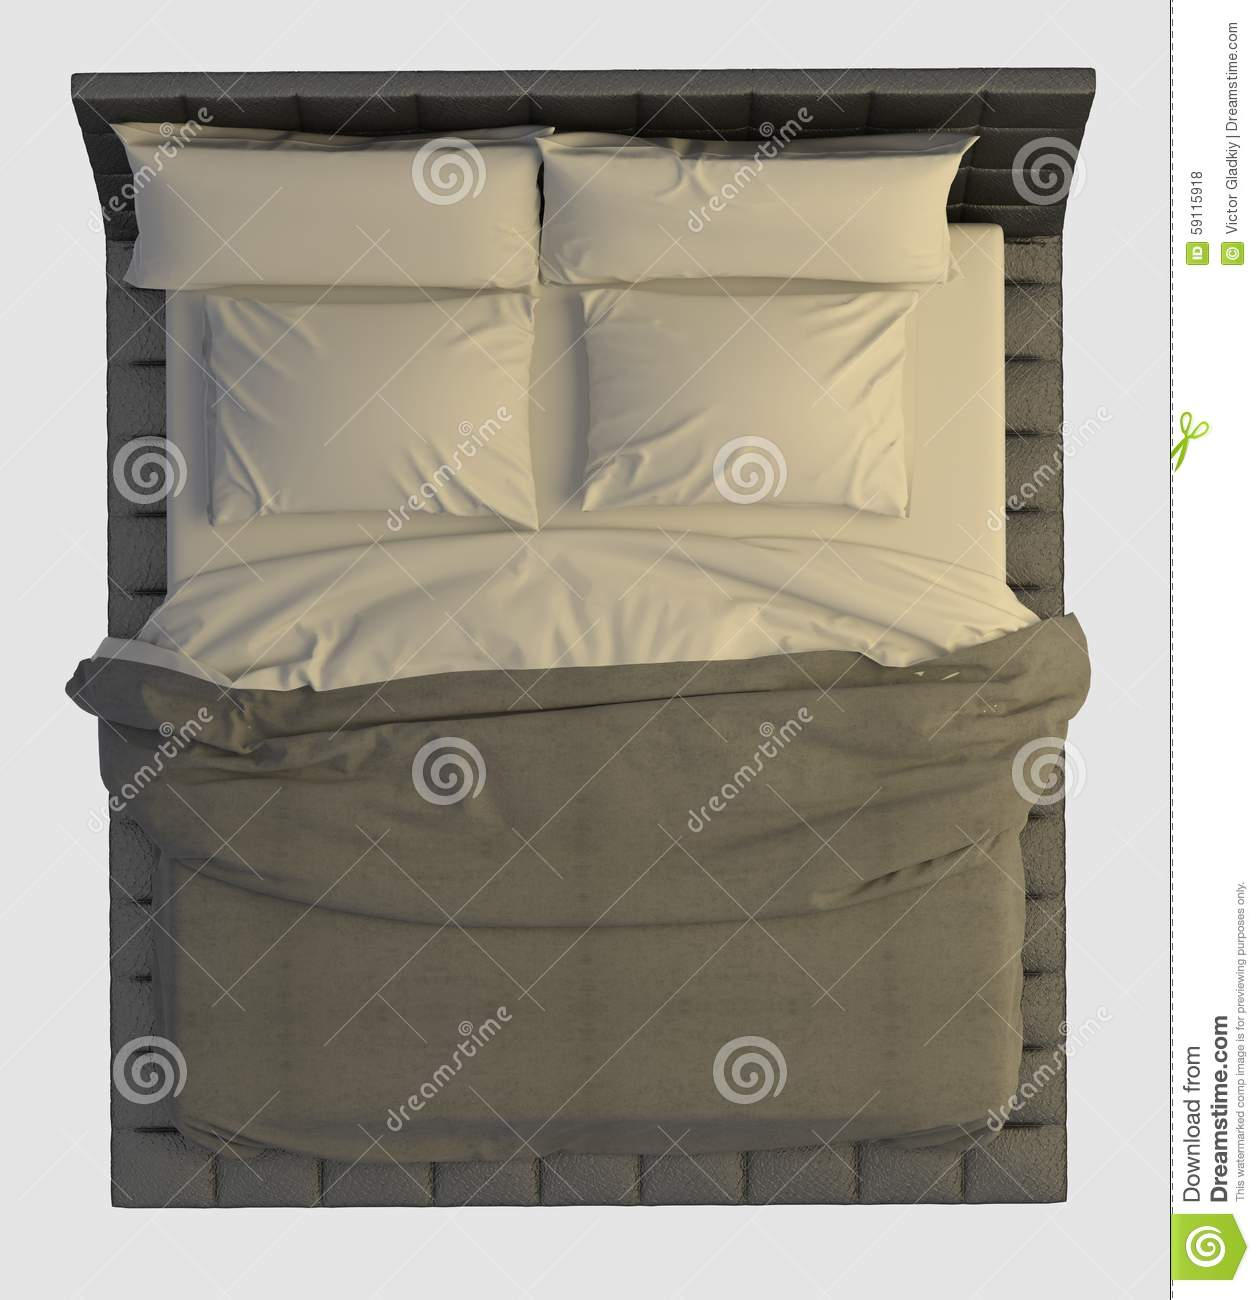 Bed Top View On White Stock Illustration - Image: 59115918